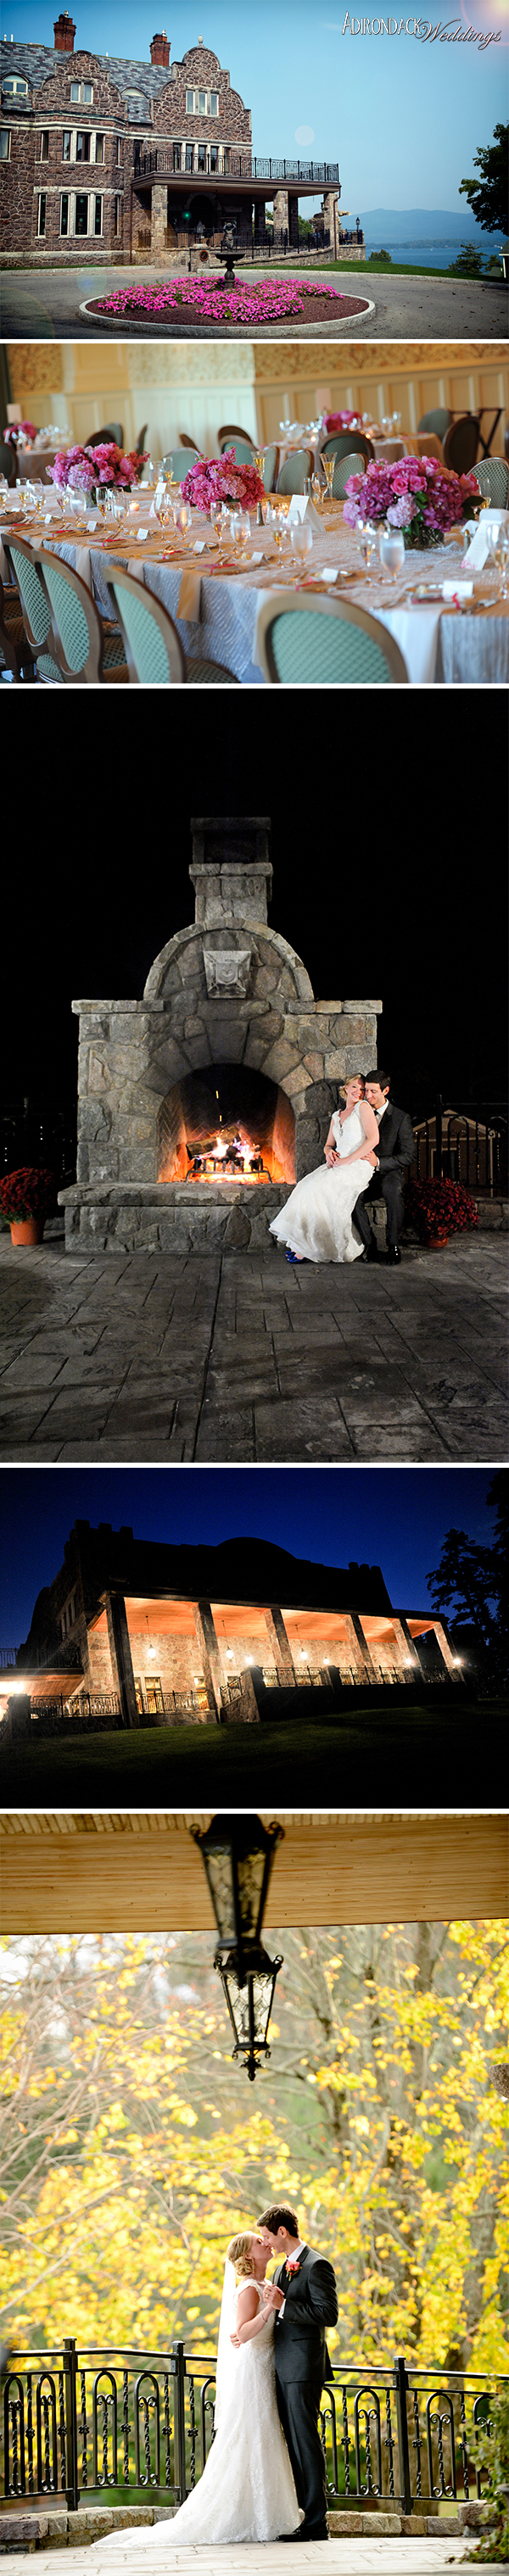 The Inn at Erlowest | Adirondack Weddings Magazine